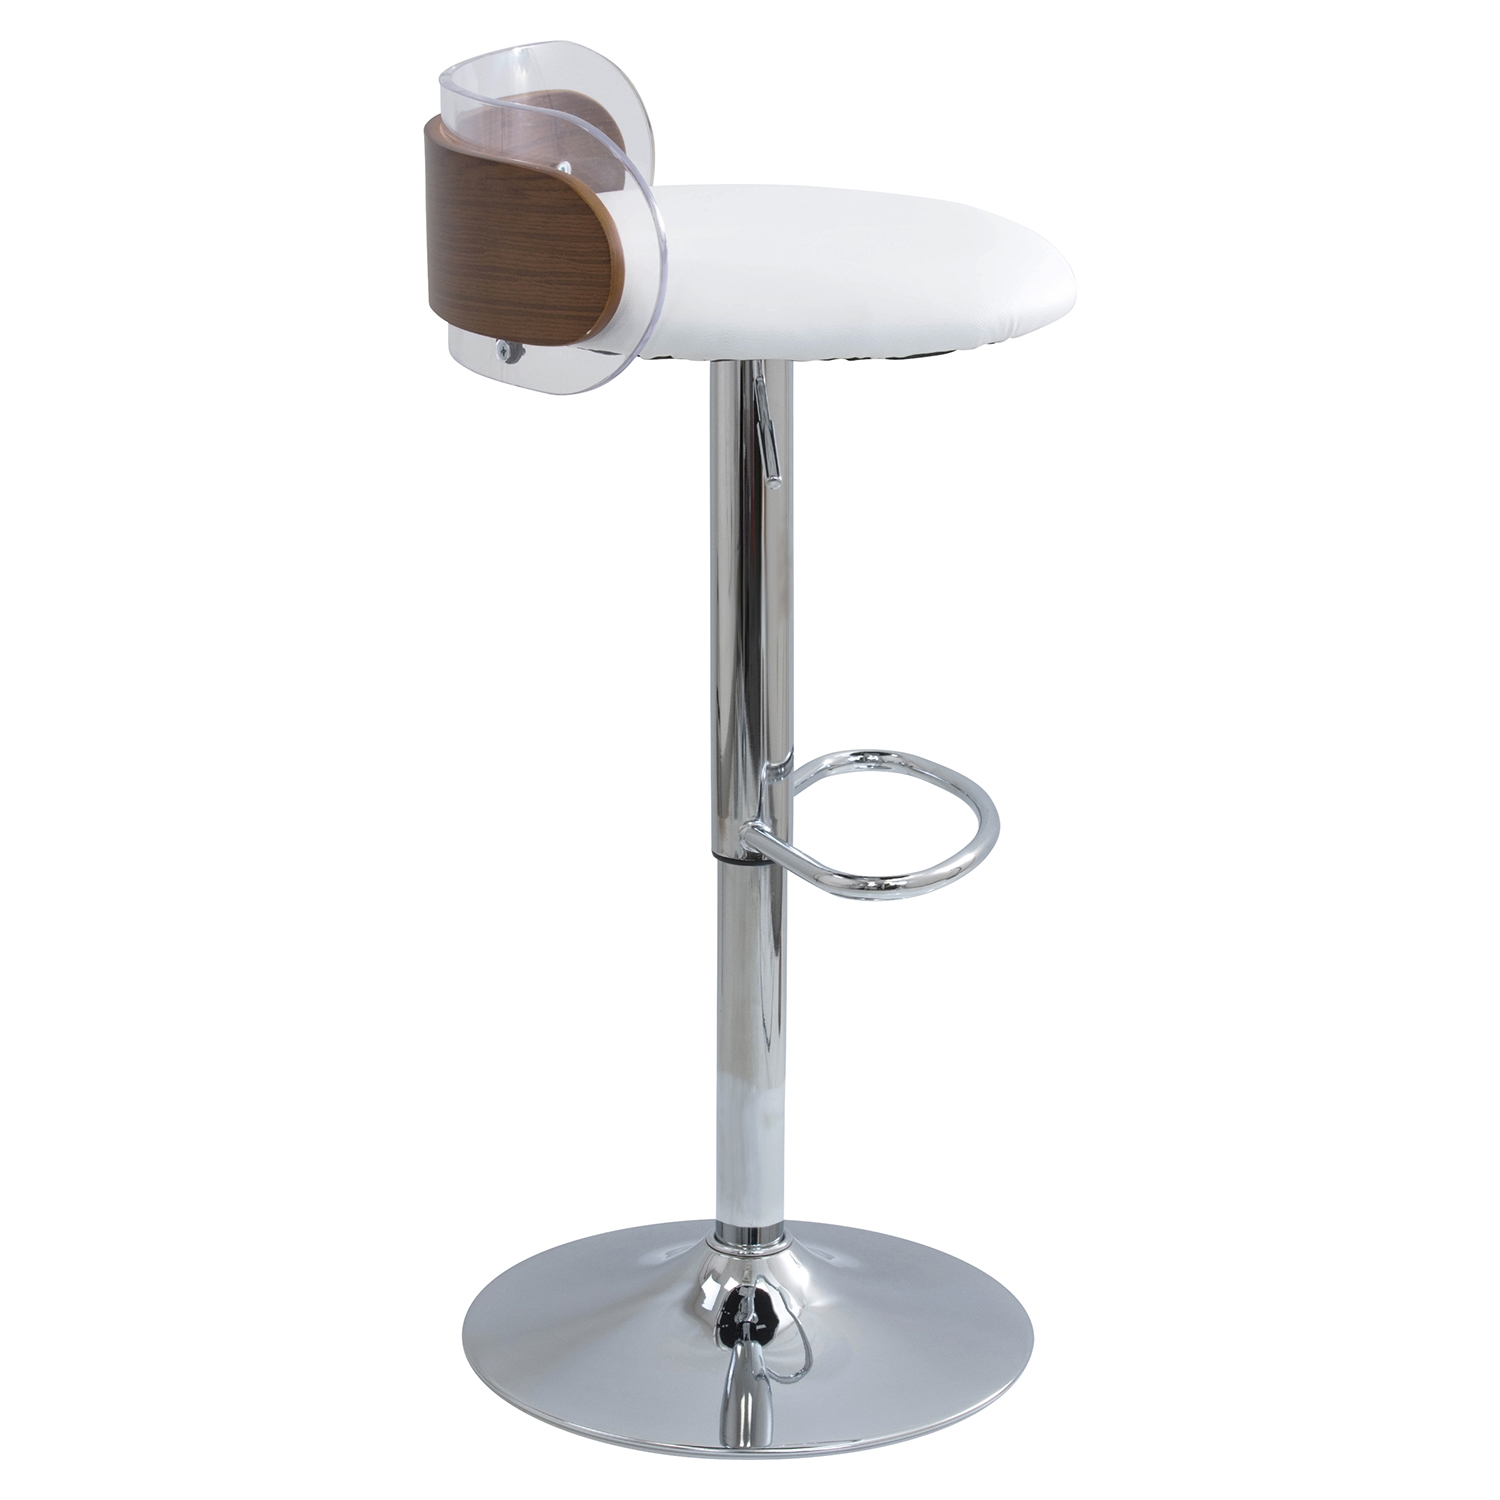 Arc Adjustable Barstool - White - LMS-BS-ARC-WL-W